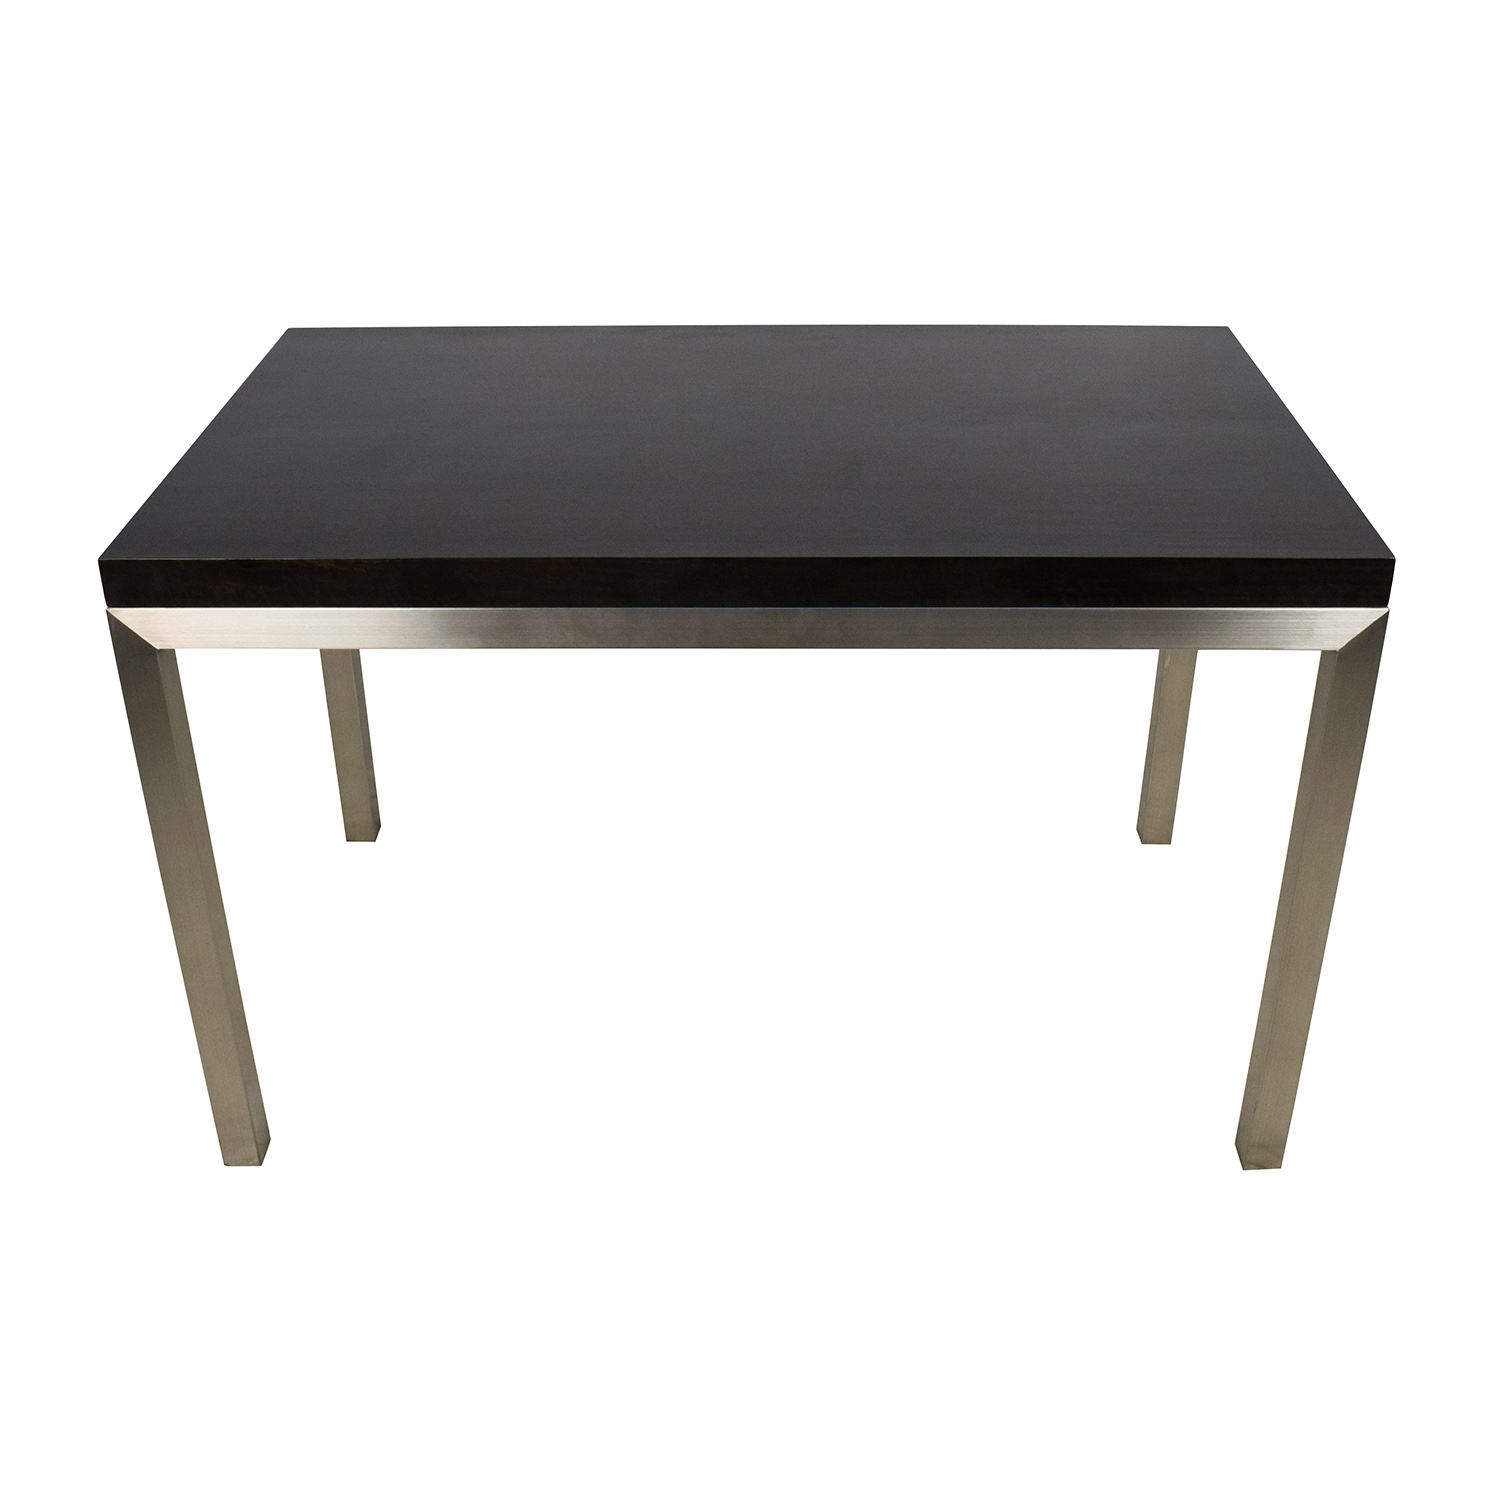 ... Crate And Barrel Crate U0026 Barrel Parsons Dining Table For ...